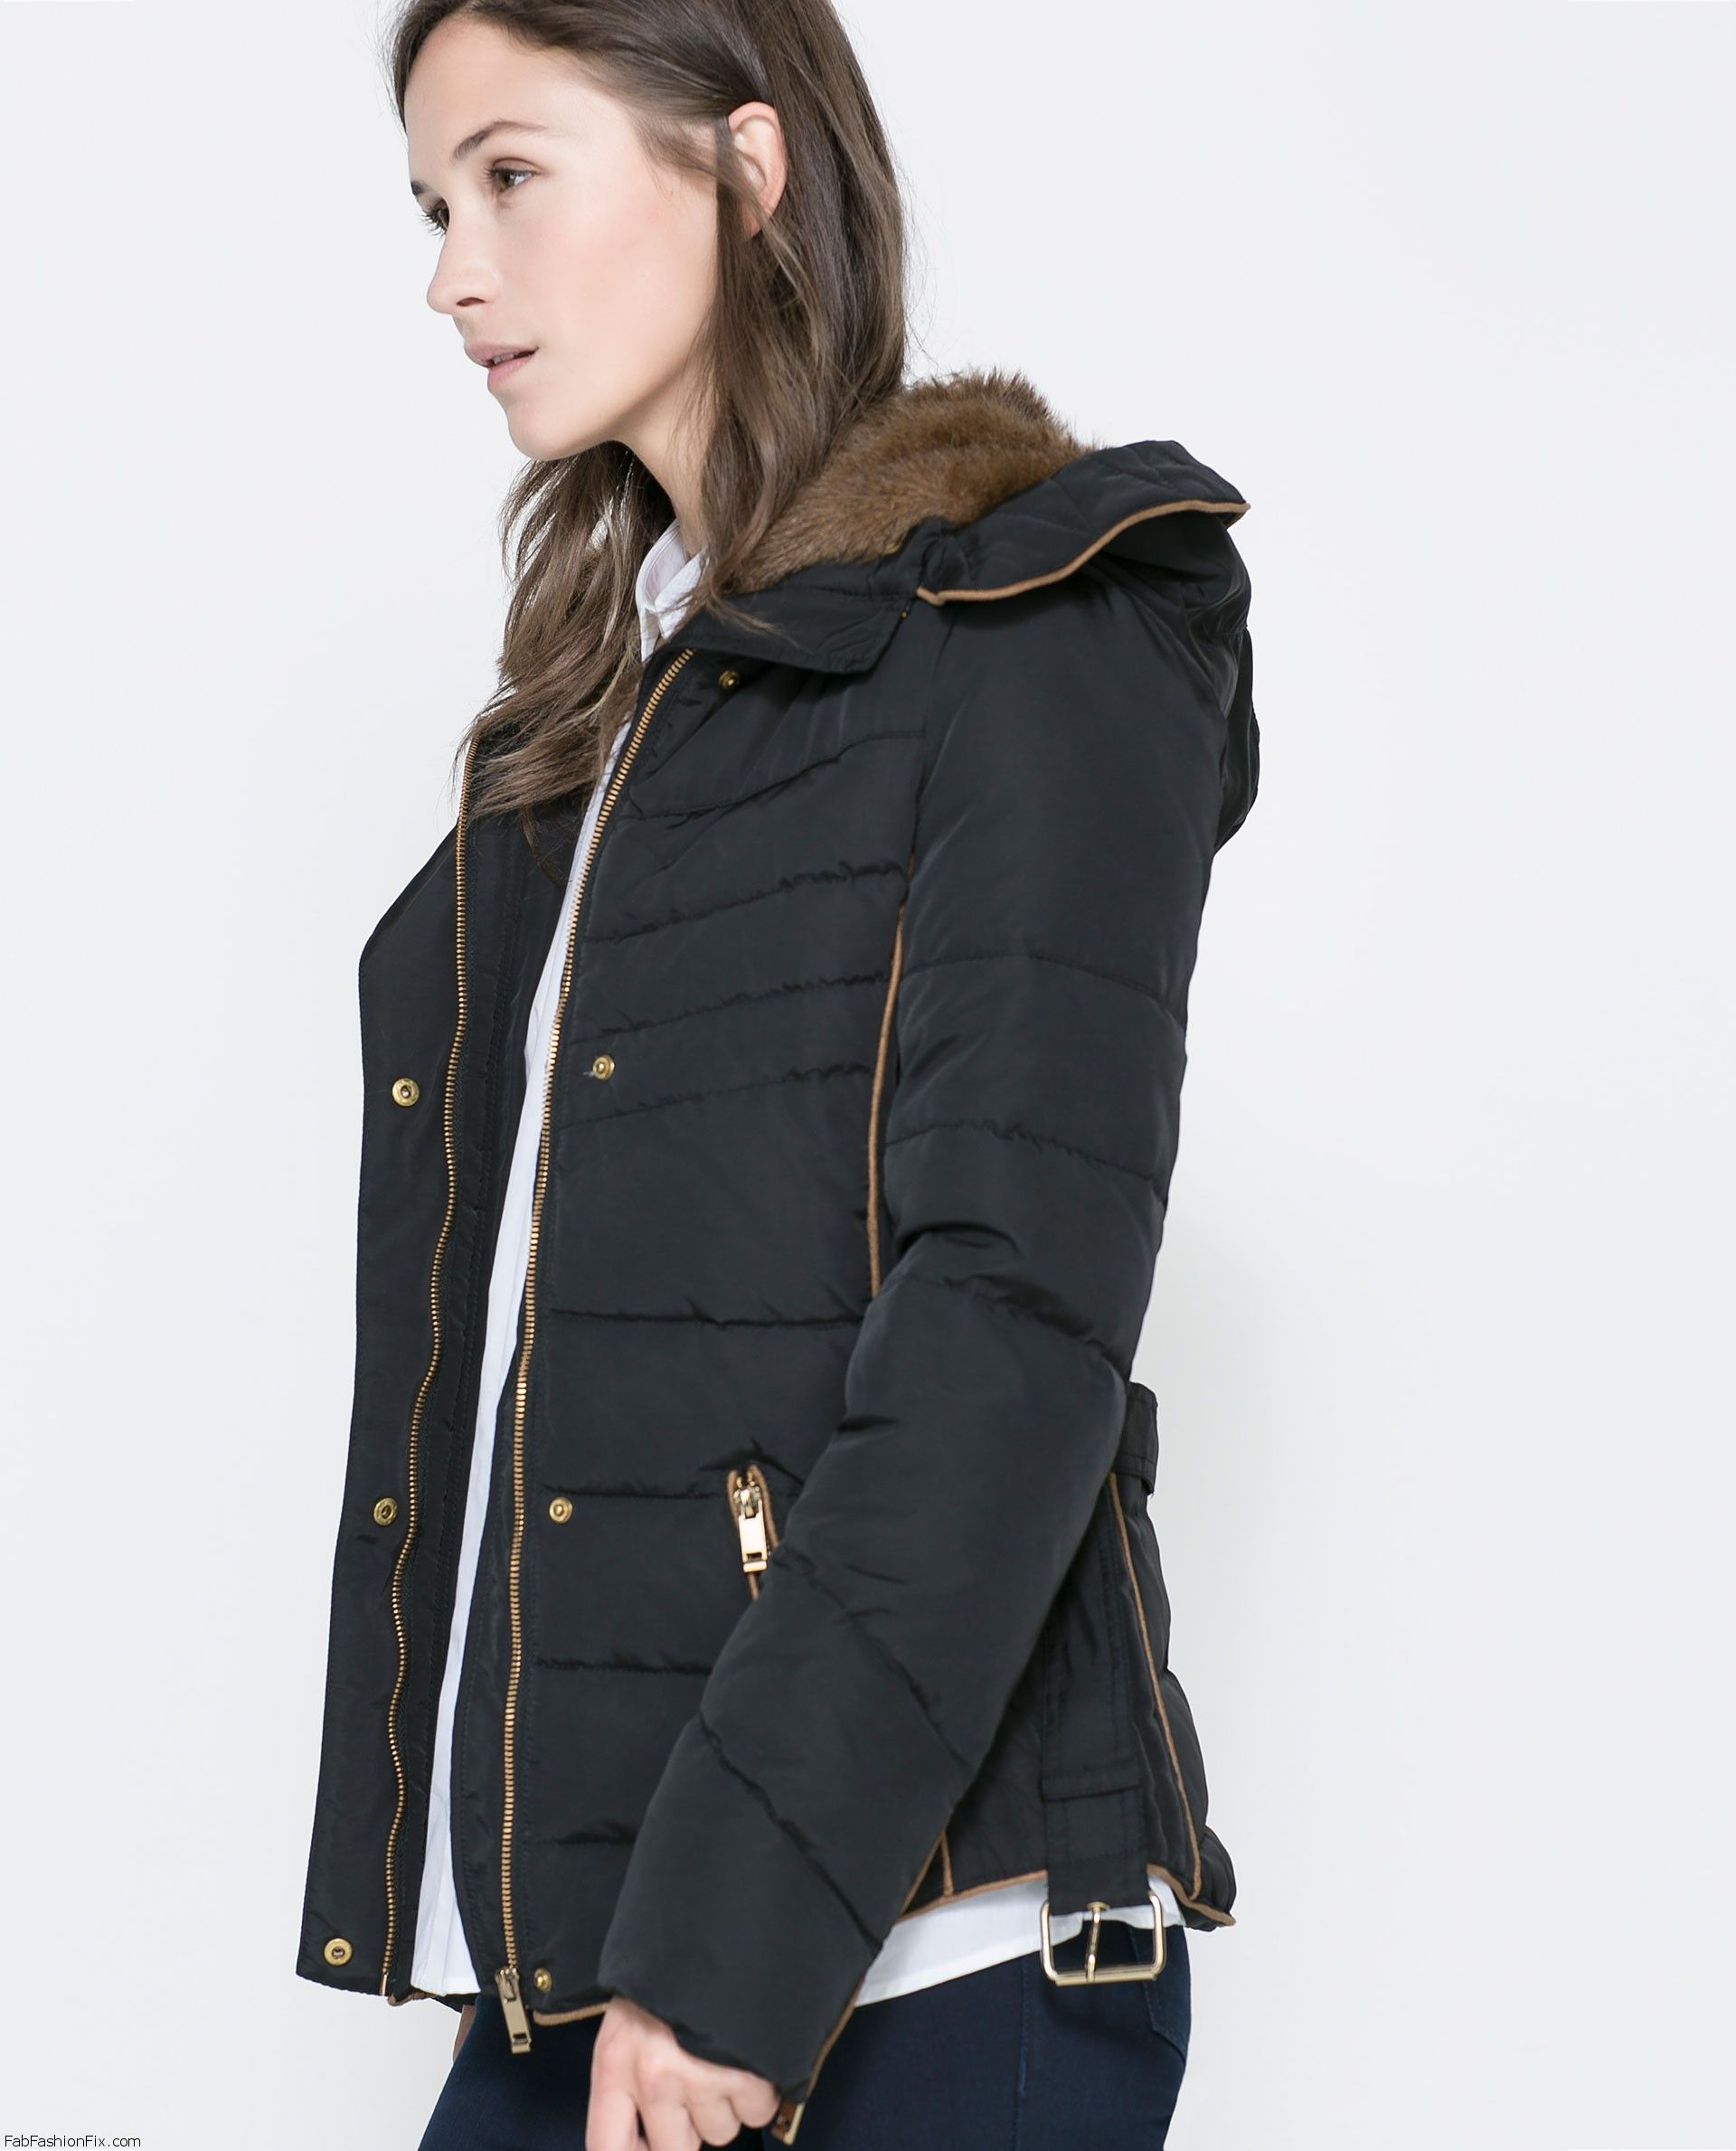 Zara Coats Amp Jackets For Fall Winter 2013 Fab Fashion Fix